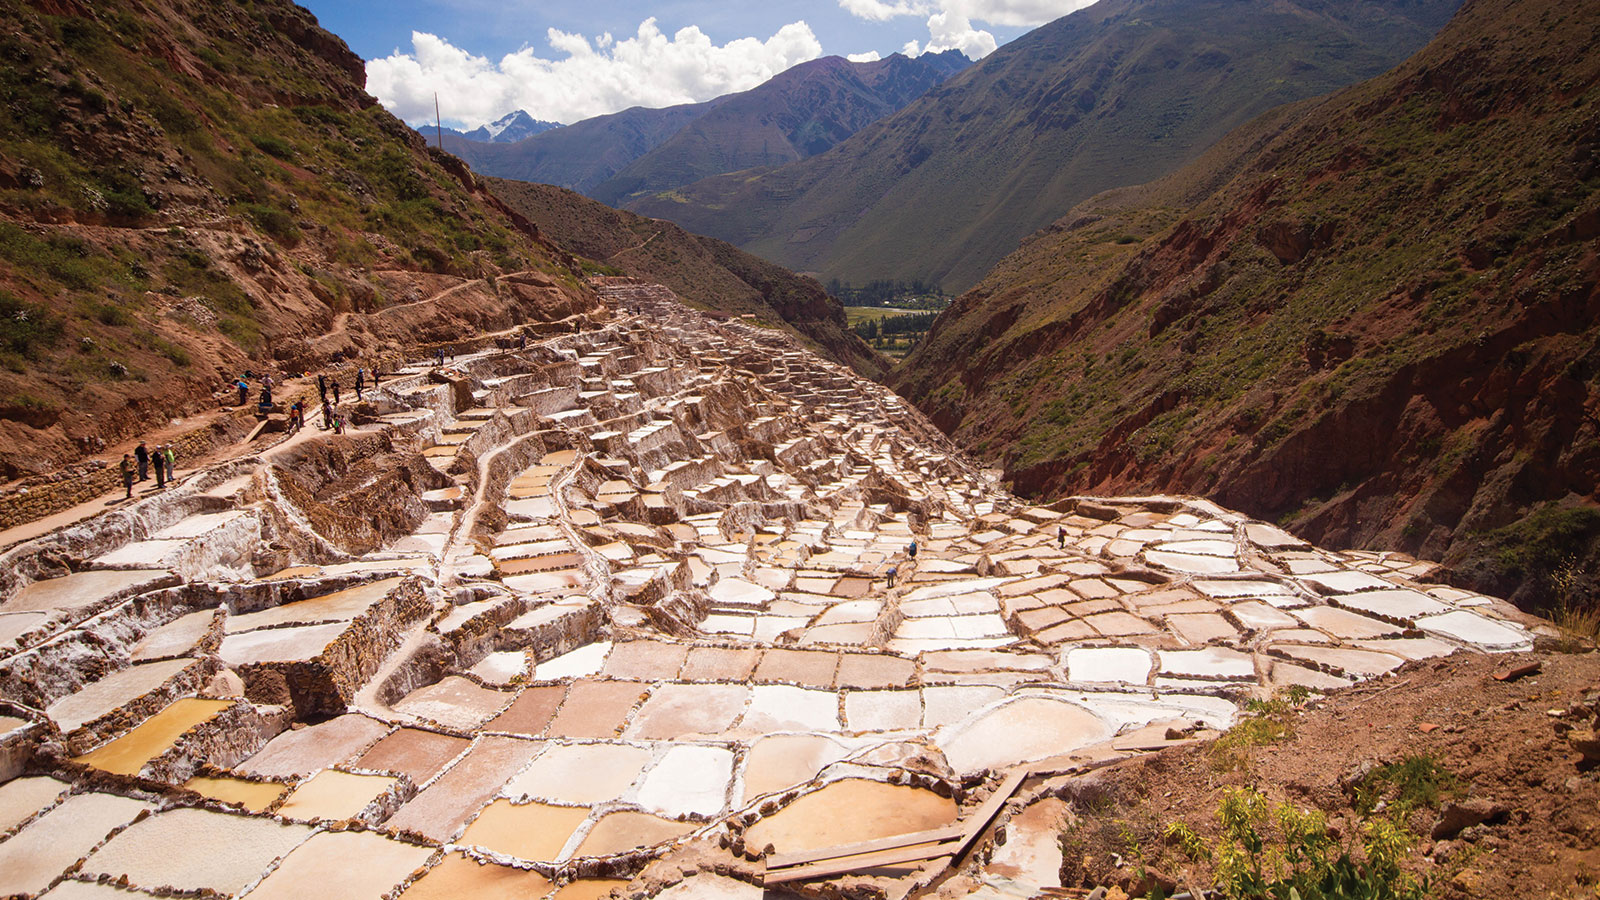 The salt pans of Moras line the Maras Canyon in the Sacred Valley of Peru